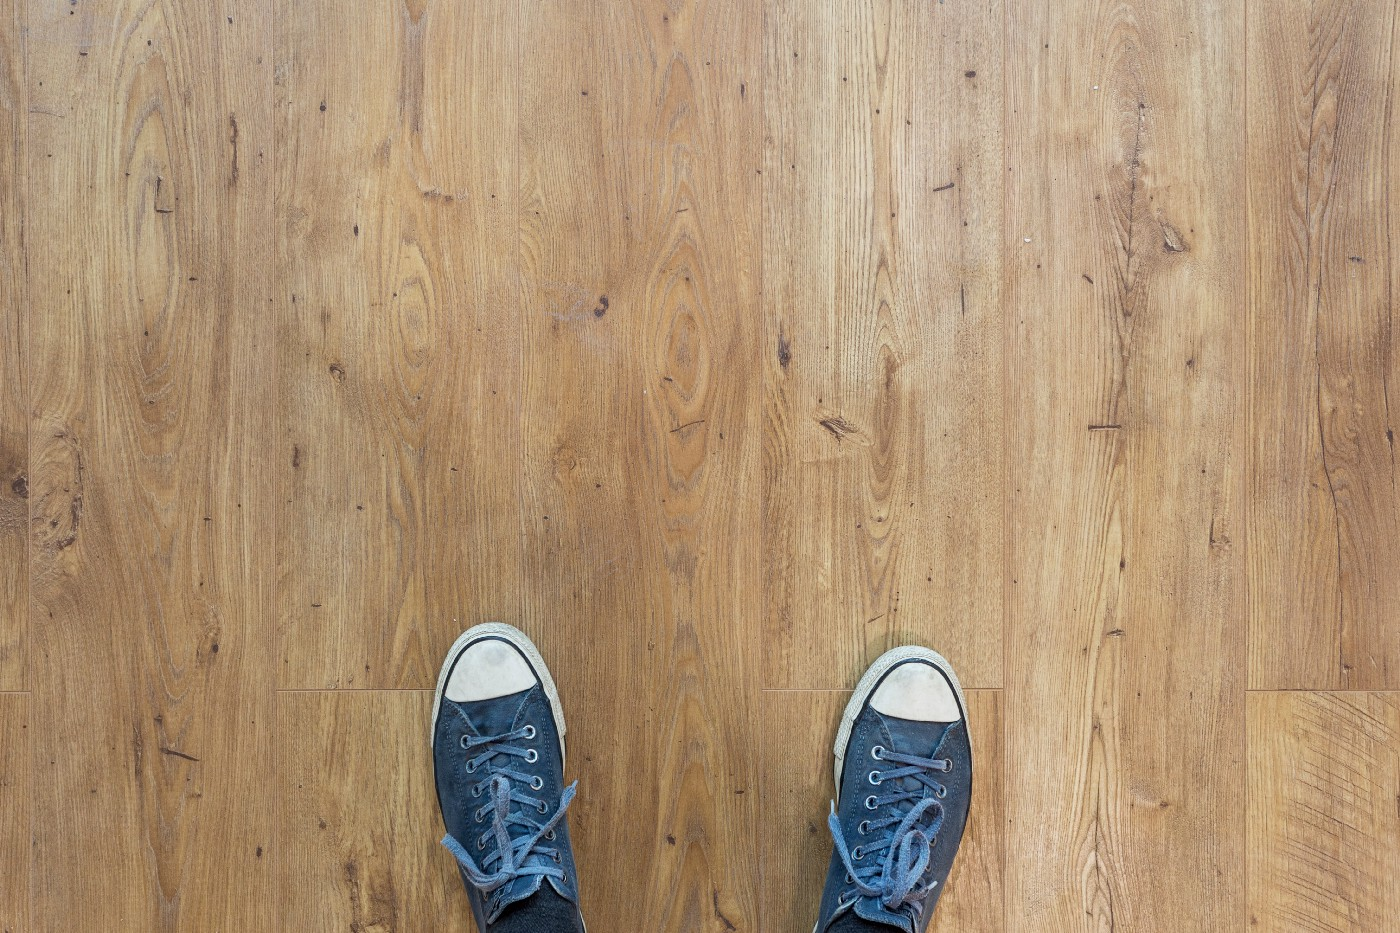 Two blue shoes on a light brown hard wood floor.